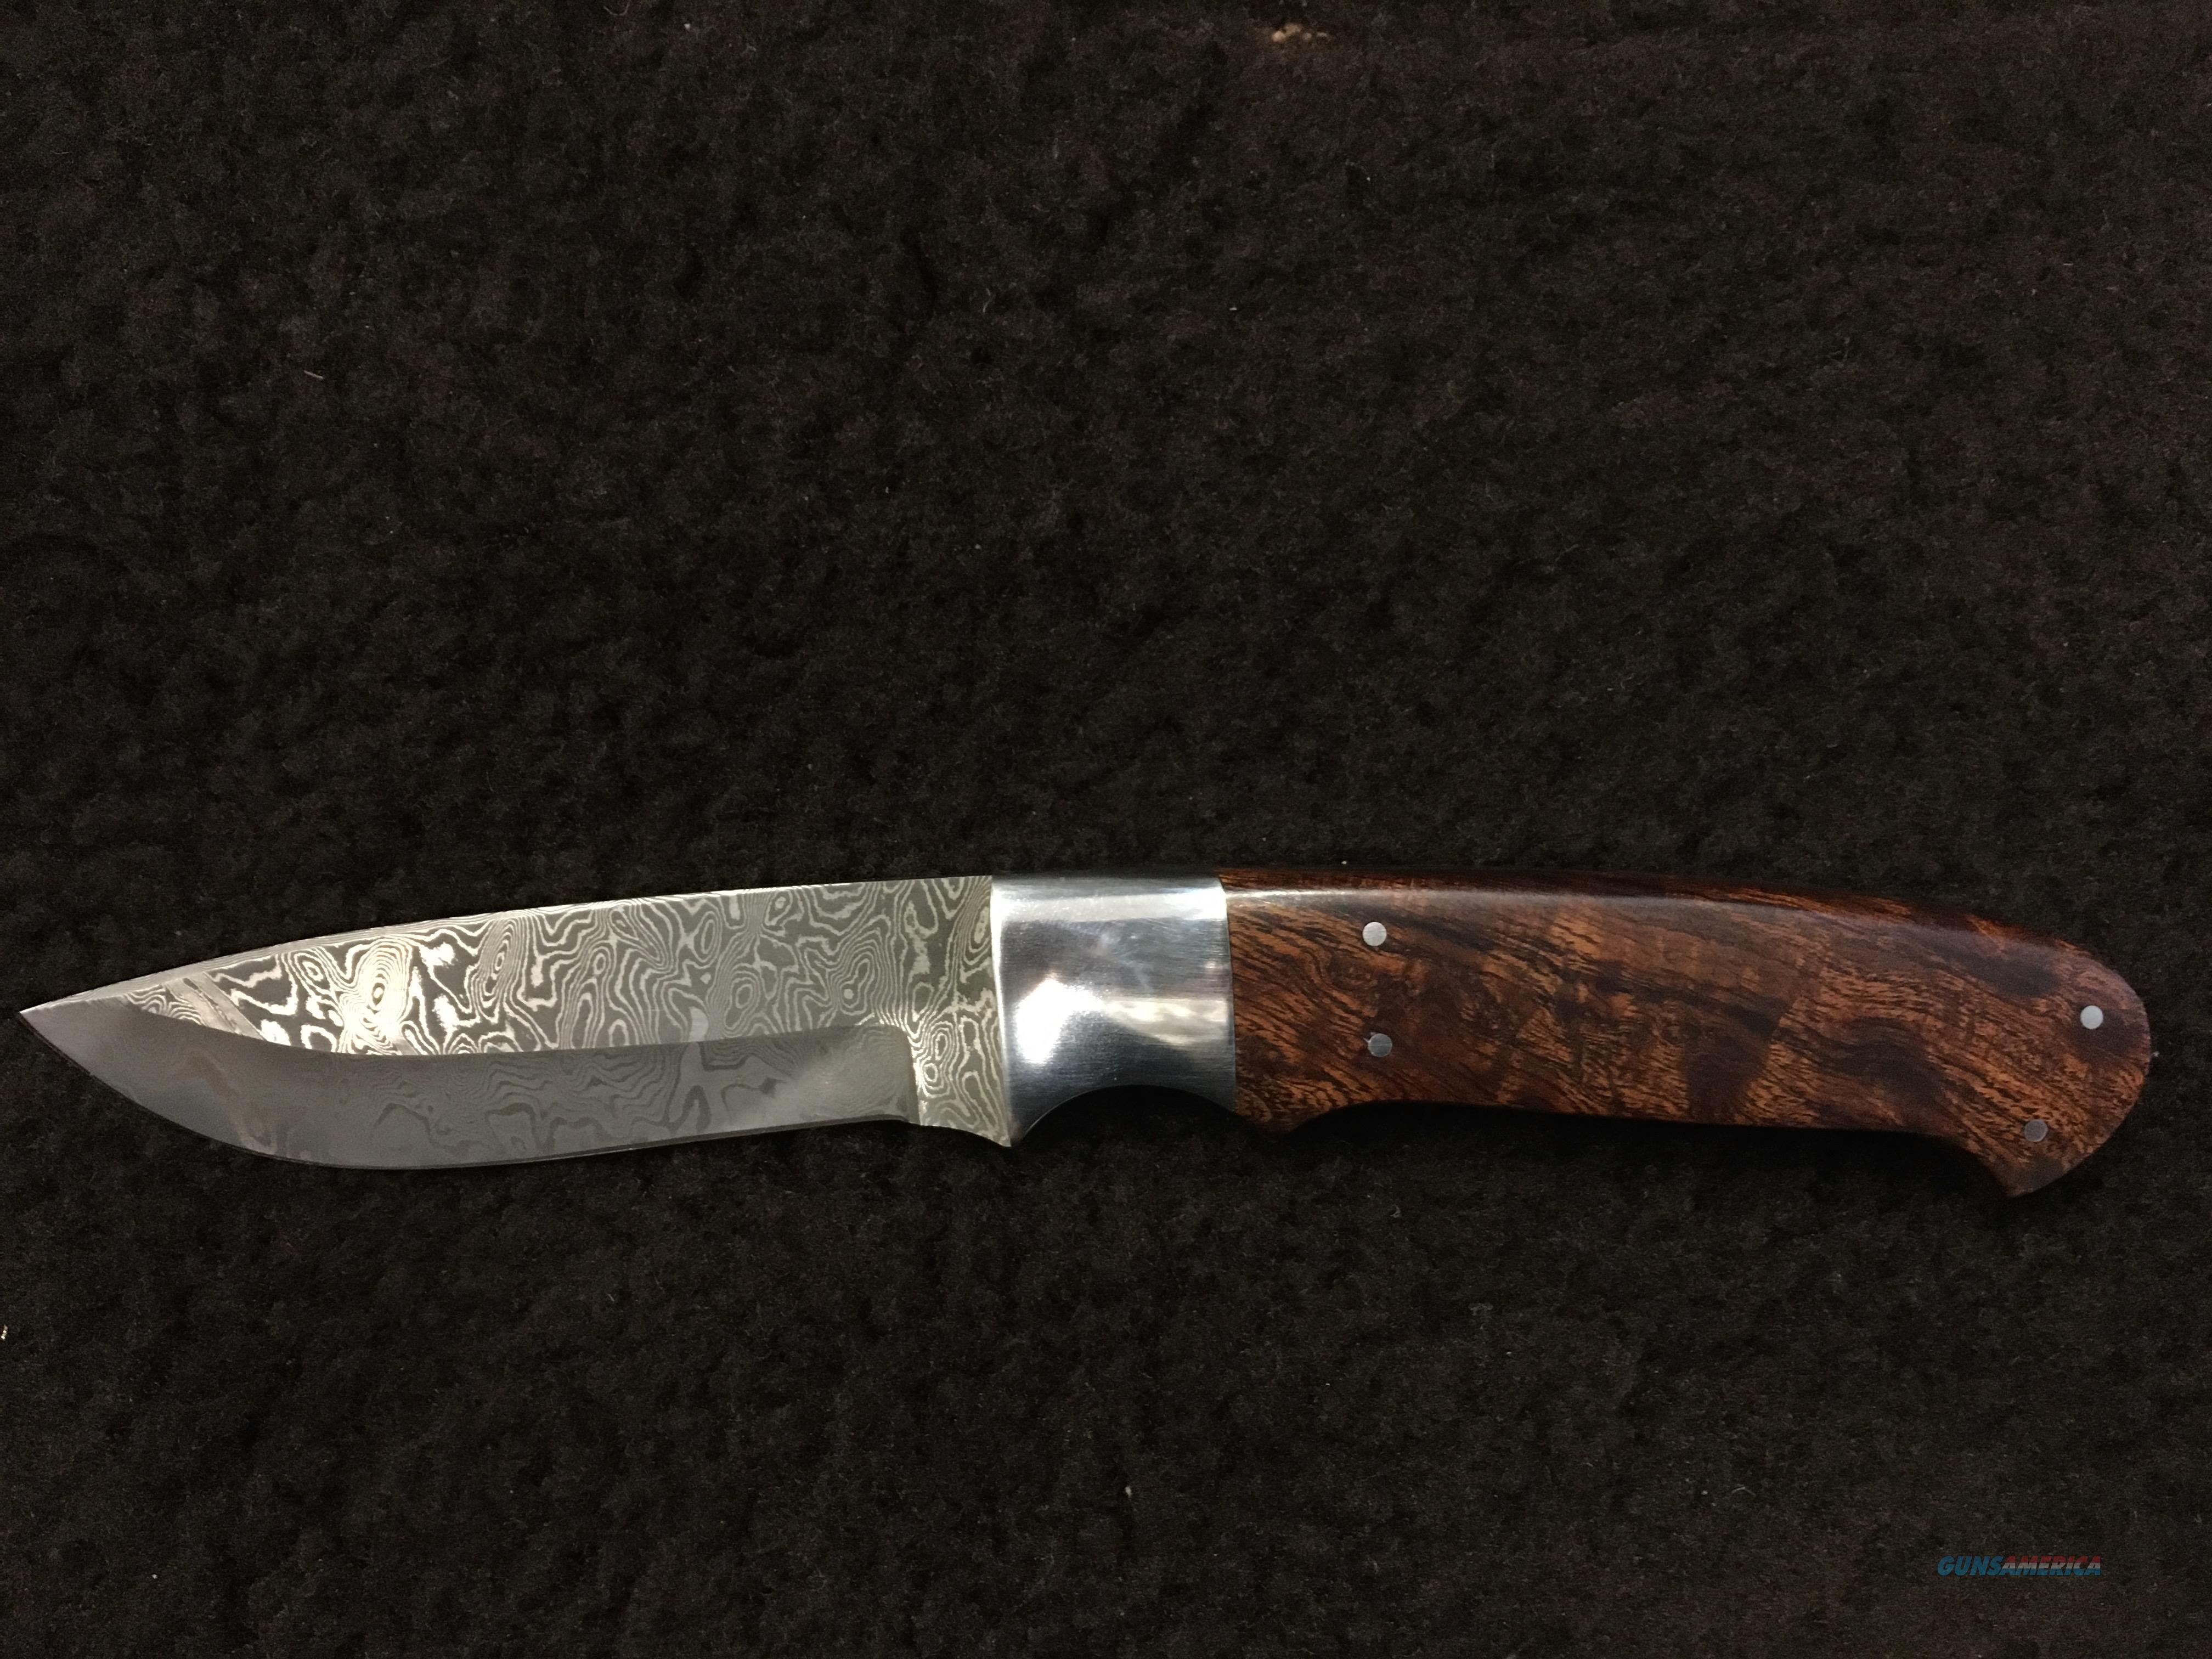 Long Cape Buffalo Hunter Stainless Steel Damascus Knife  Non-Guns > Knives/Swords > Knives > Fixed Blade > Hand Made